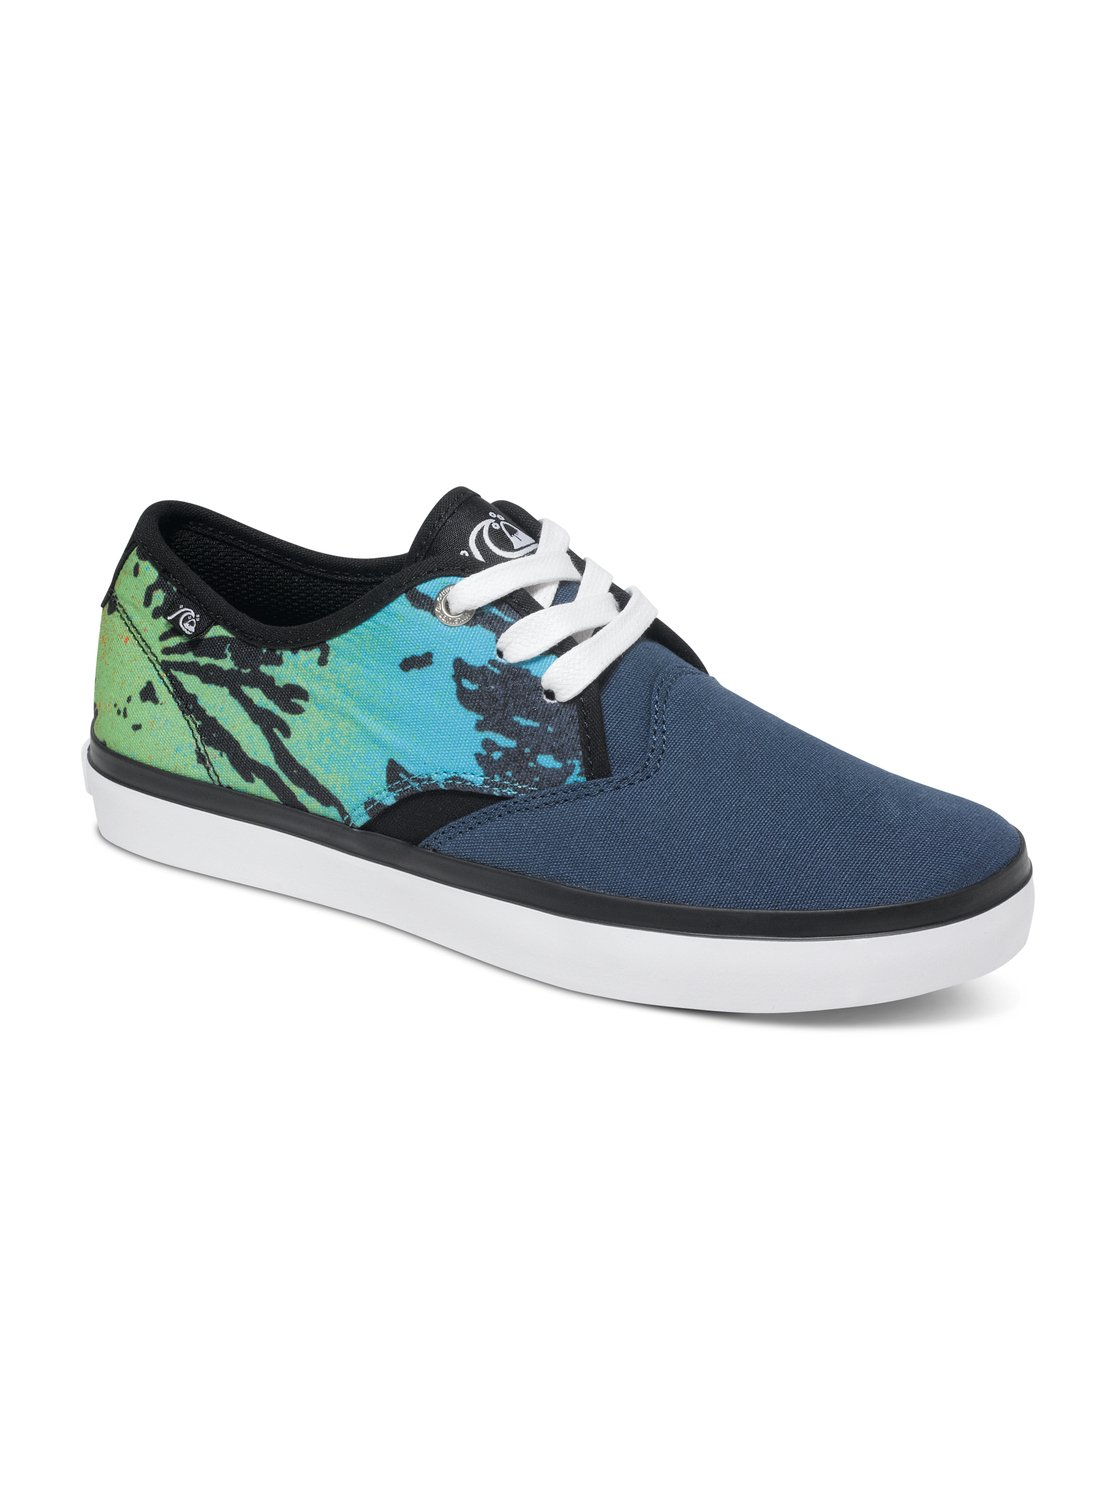 SHOREBREAK DELUXE - Sneaker low - grey/blue/white 7iECsl